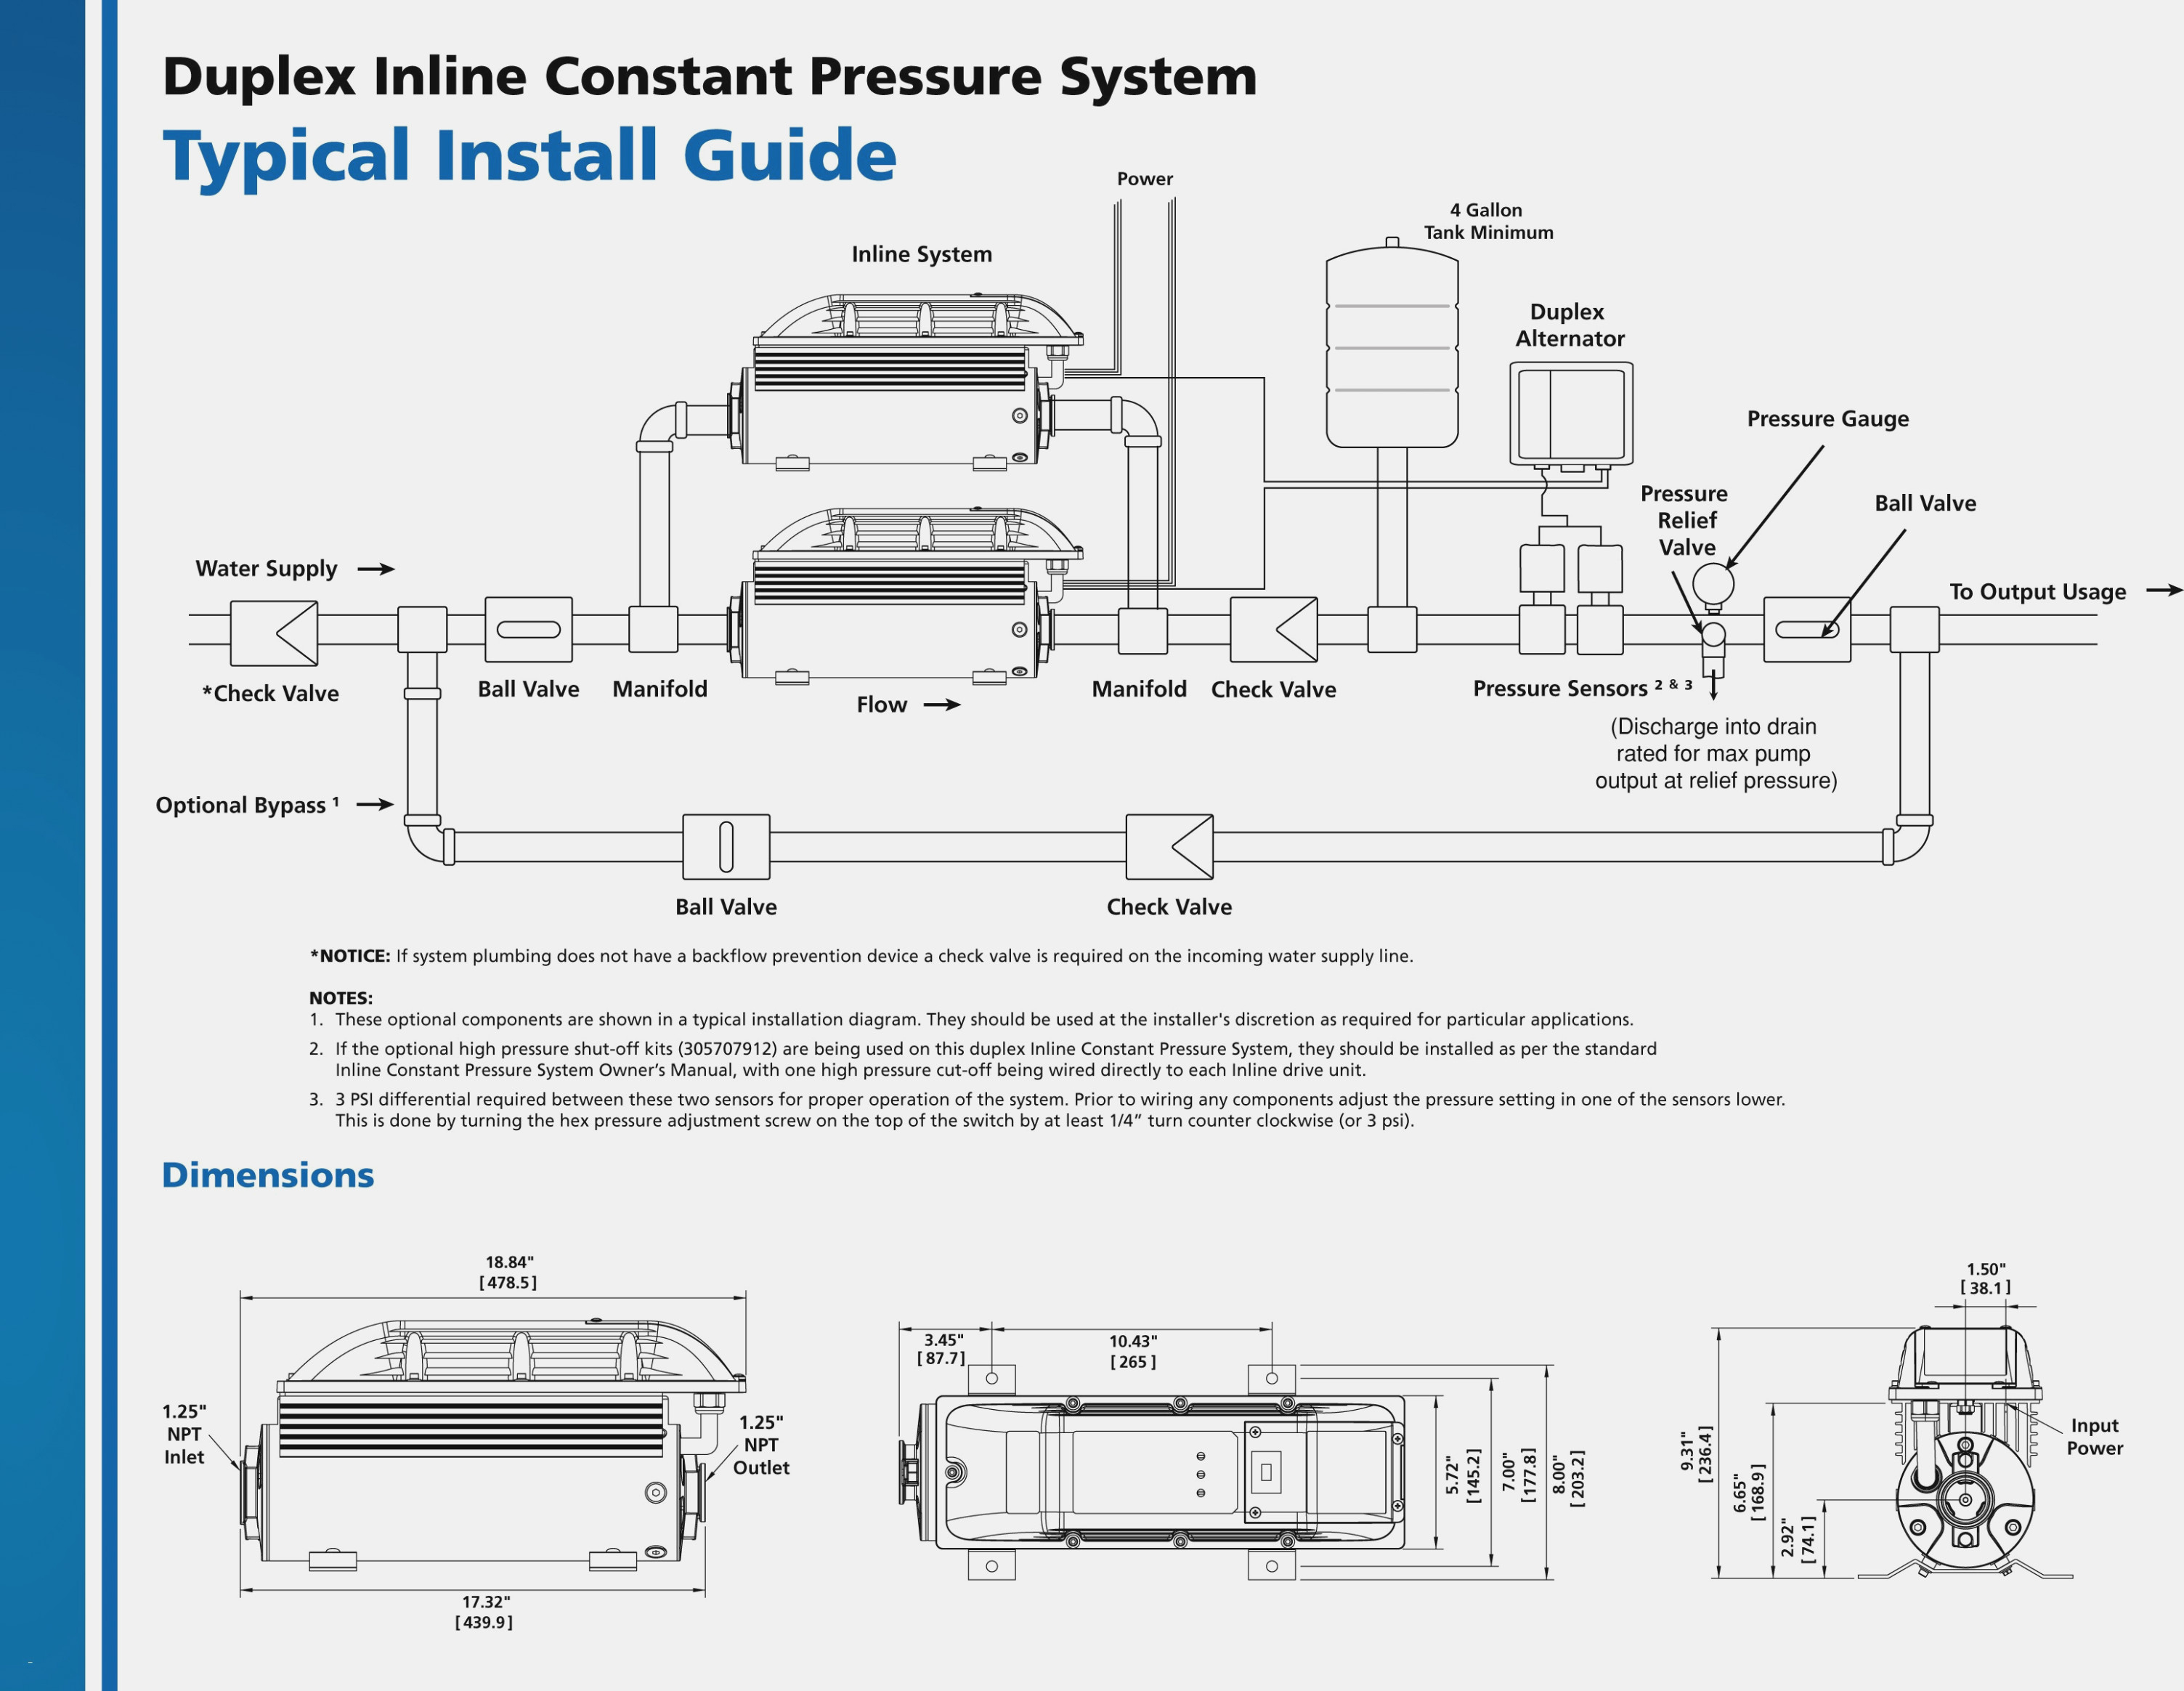 Wiring Diagram For 220 Volt Air Compressor | Wiring Diagram - Air Compressor Wiring Diagram